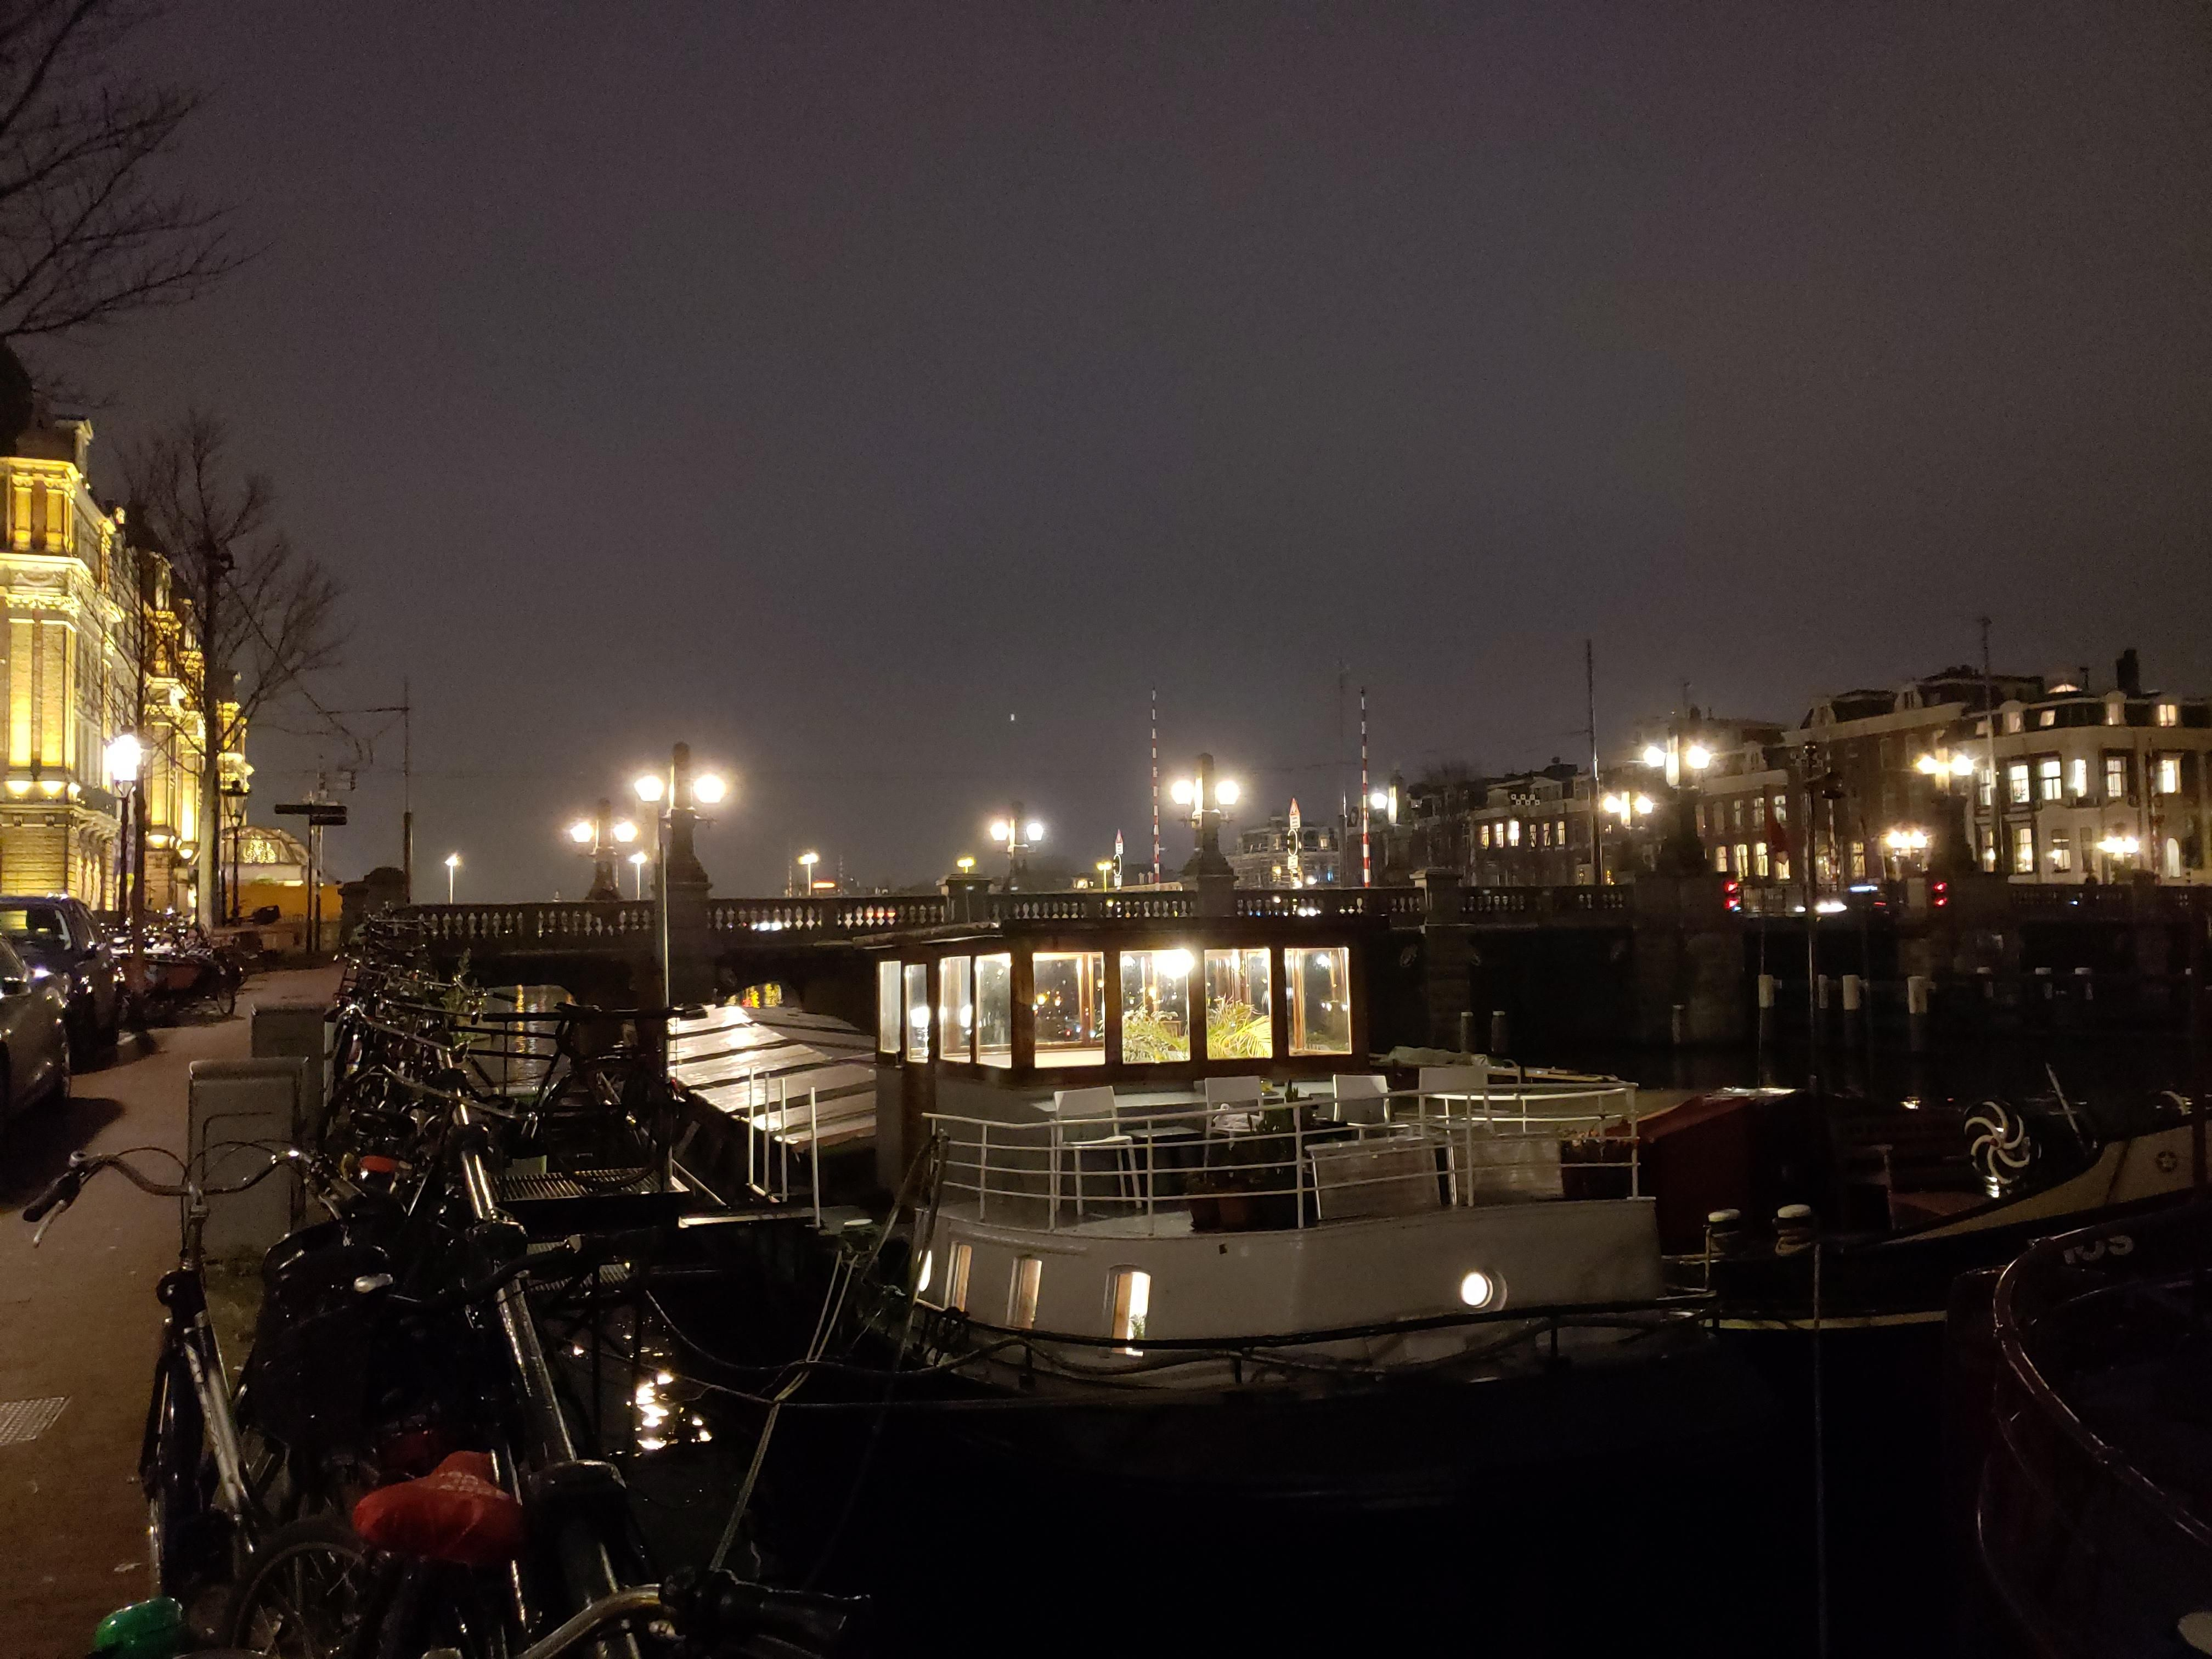 Amsterdam winter 2018 has some of the most amazing